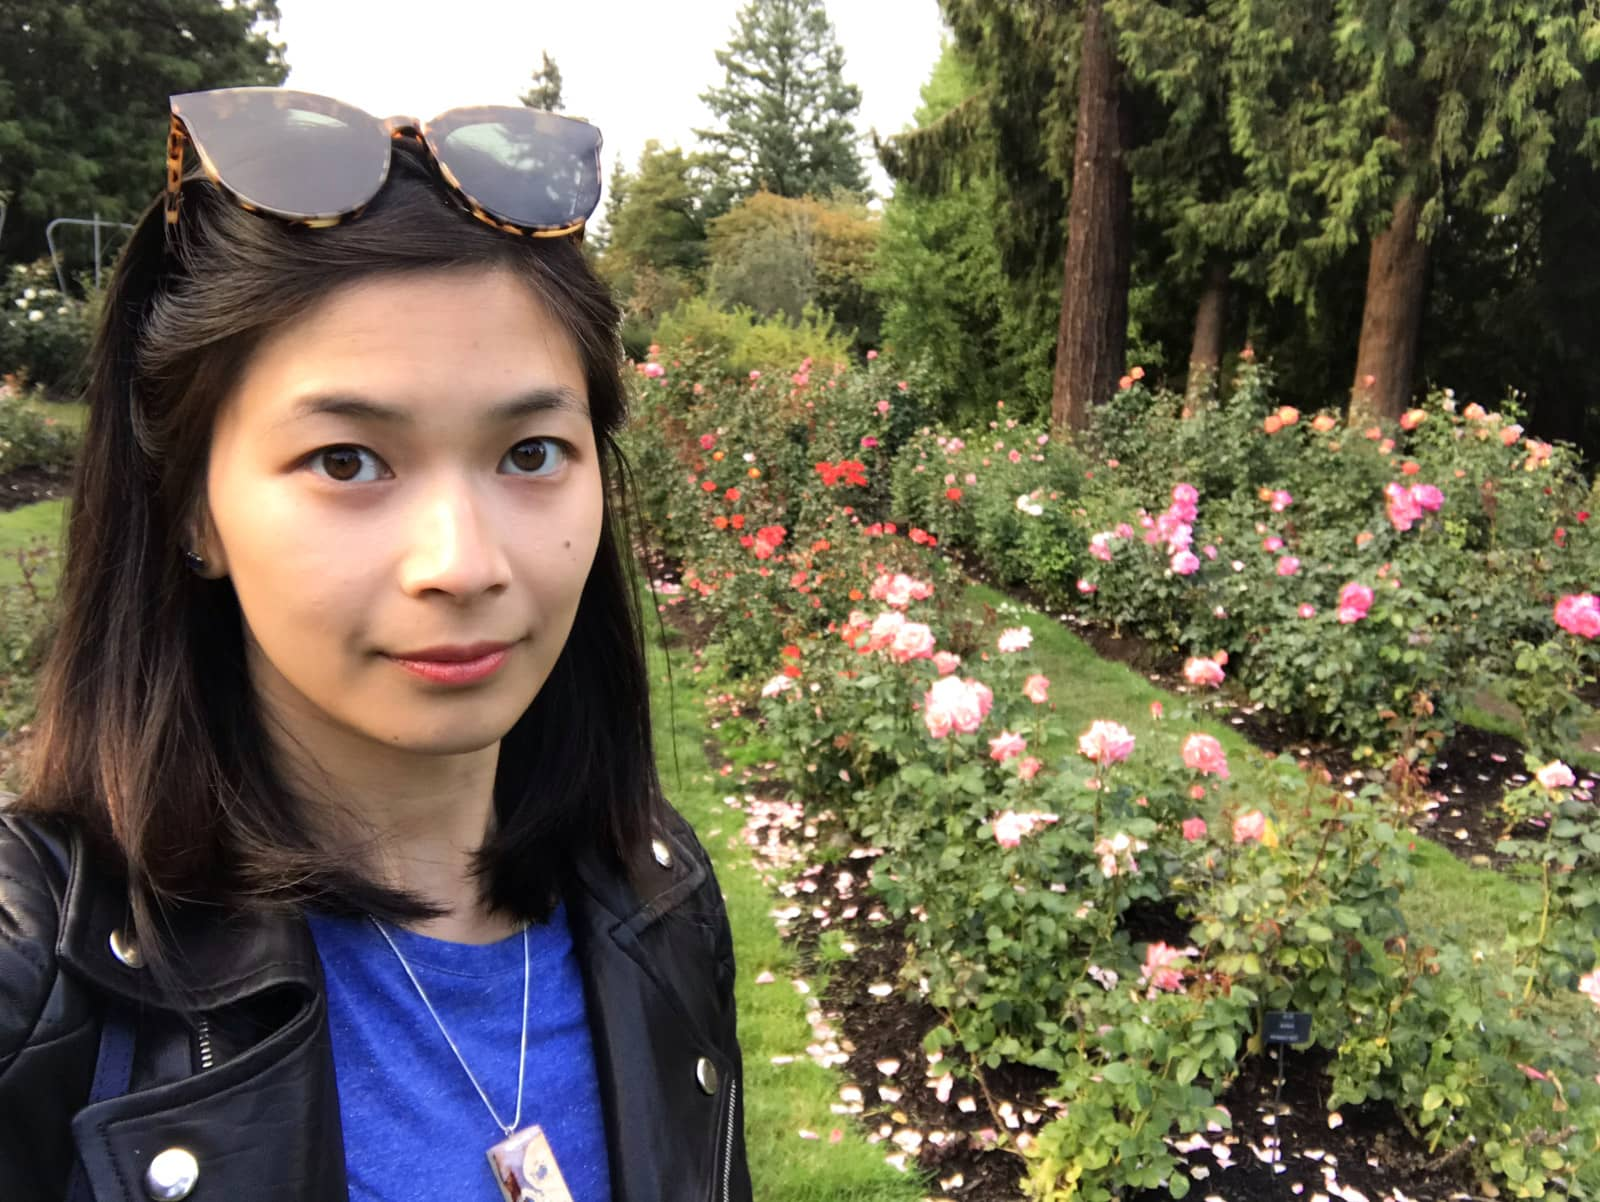 A selfie of a woman with short dark hair, wearing a blue shirt and black jacket. She is in the middle of a rose garden